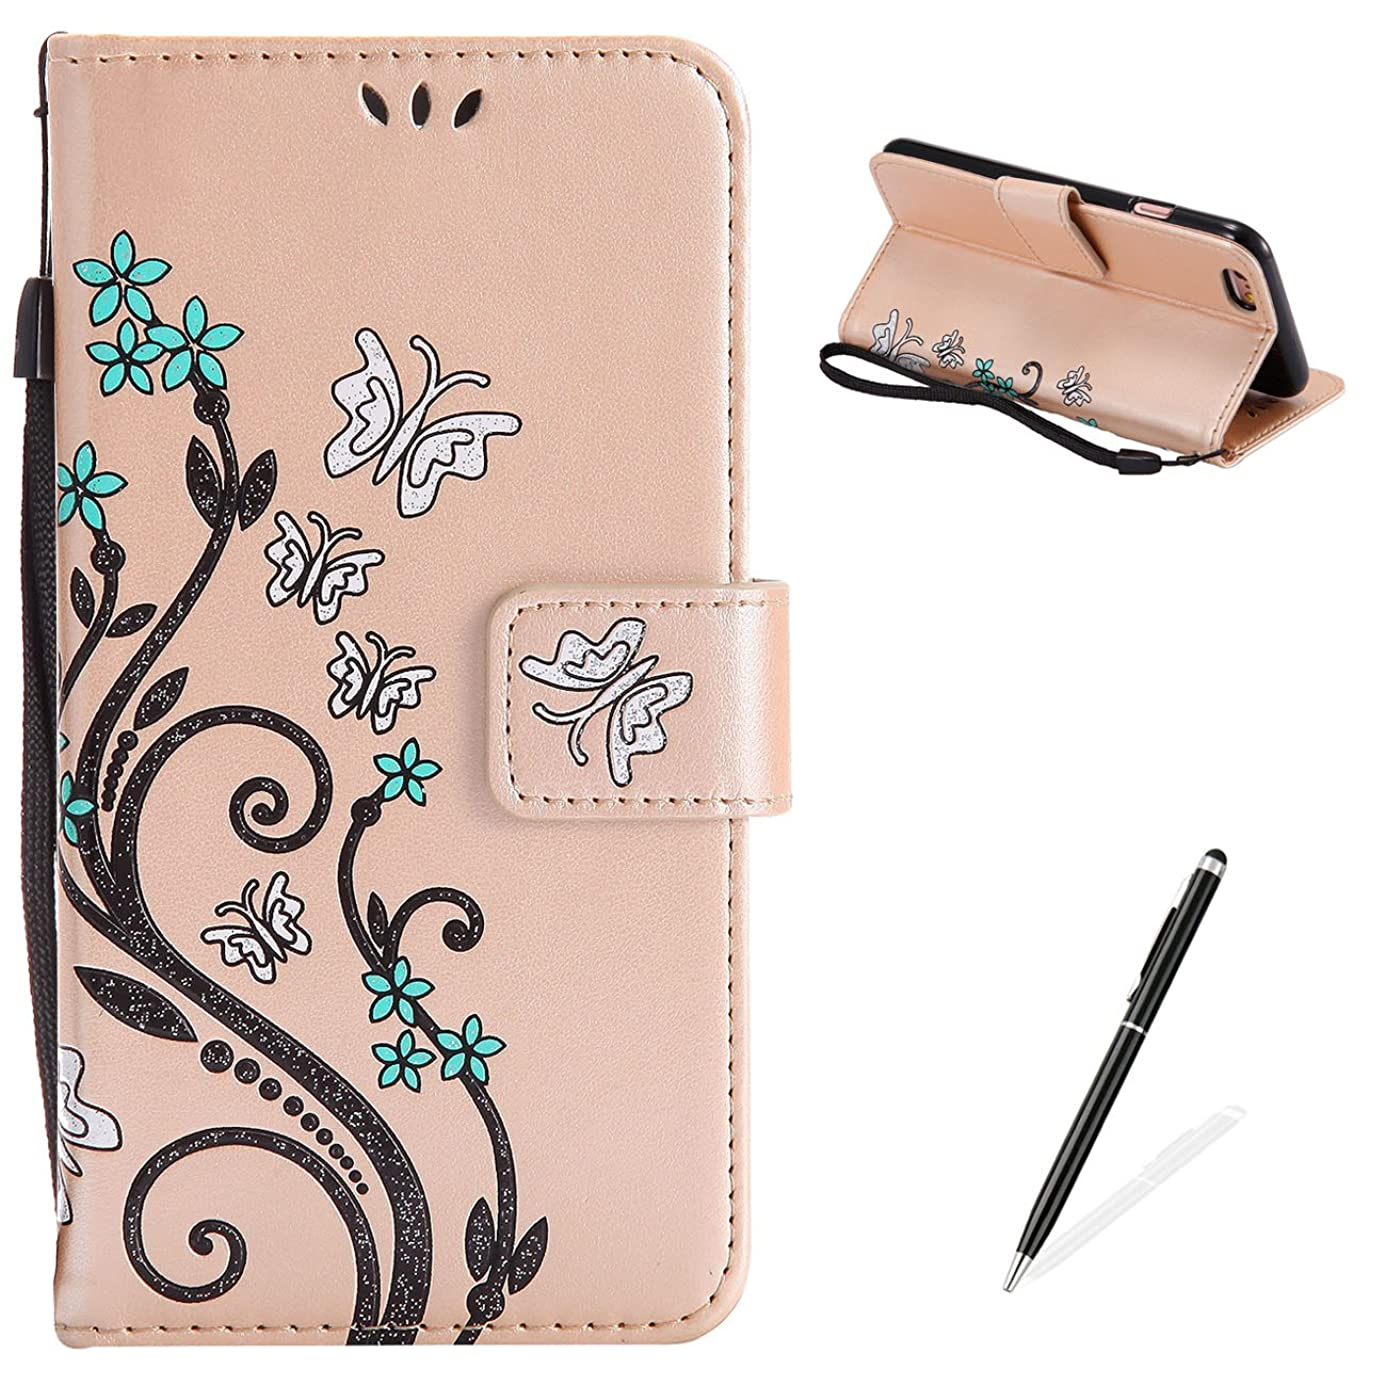 MAGQI Apple iPhone 6/6S 4.7'' Case, Premium Slim Fit Flip PU Leather Stand Wallet Book Style Case with Card Slots Magnetic Closure Embossed Rose Flower Butterfly Pattern Cover